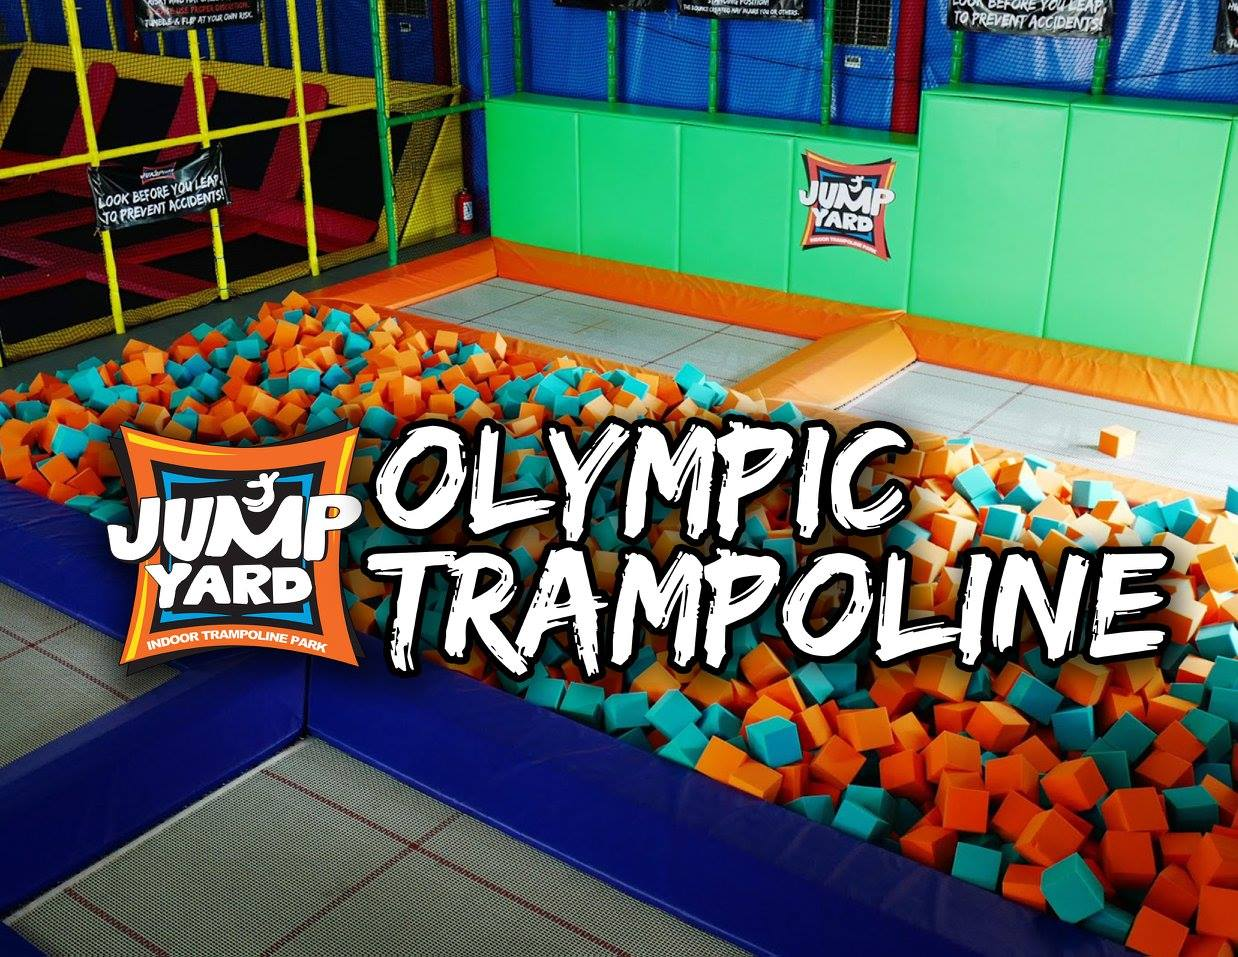 Try playing here at the Olympic Trampoline for an exhilarating experience.